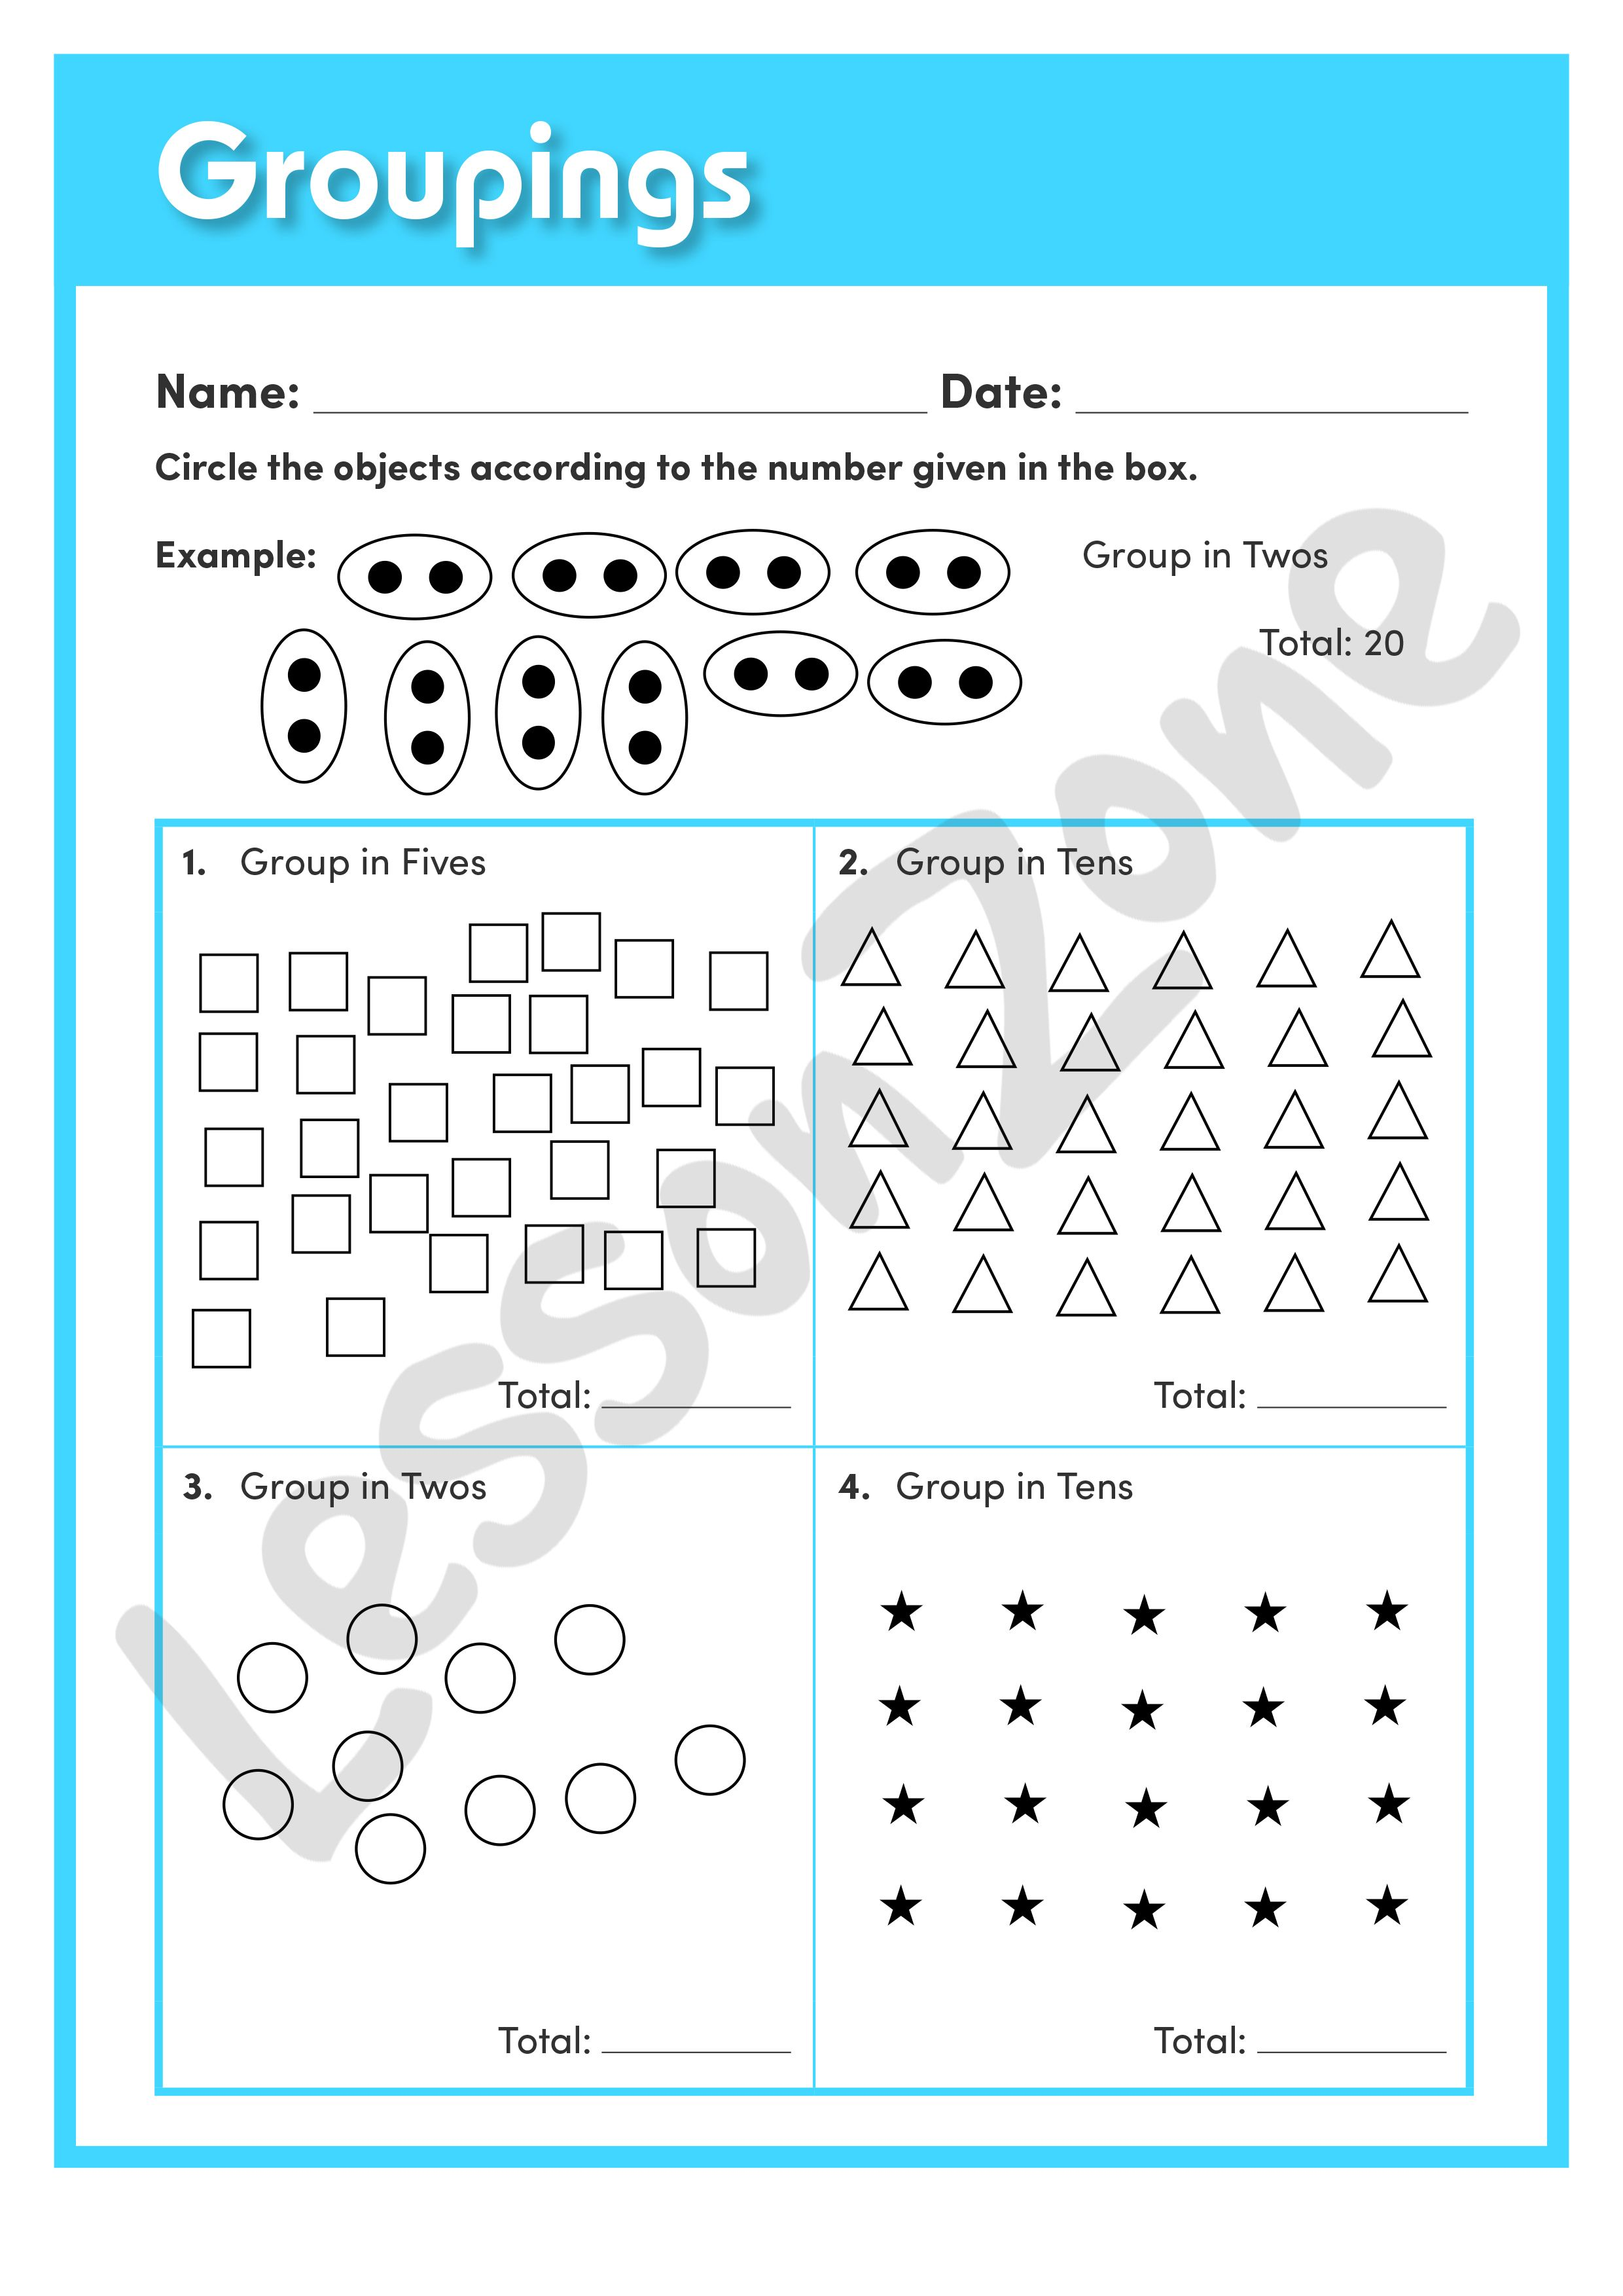 This Understanding Numbers Worksheet Groupings Asks